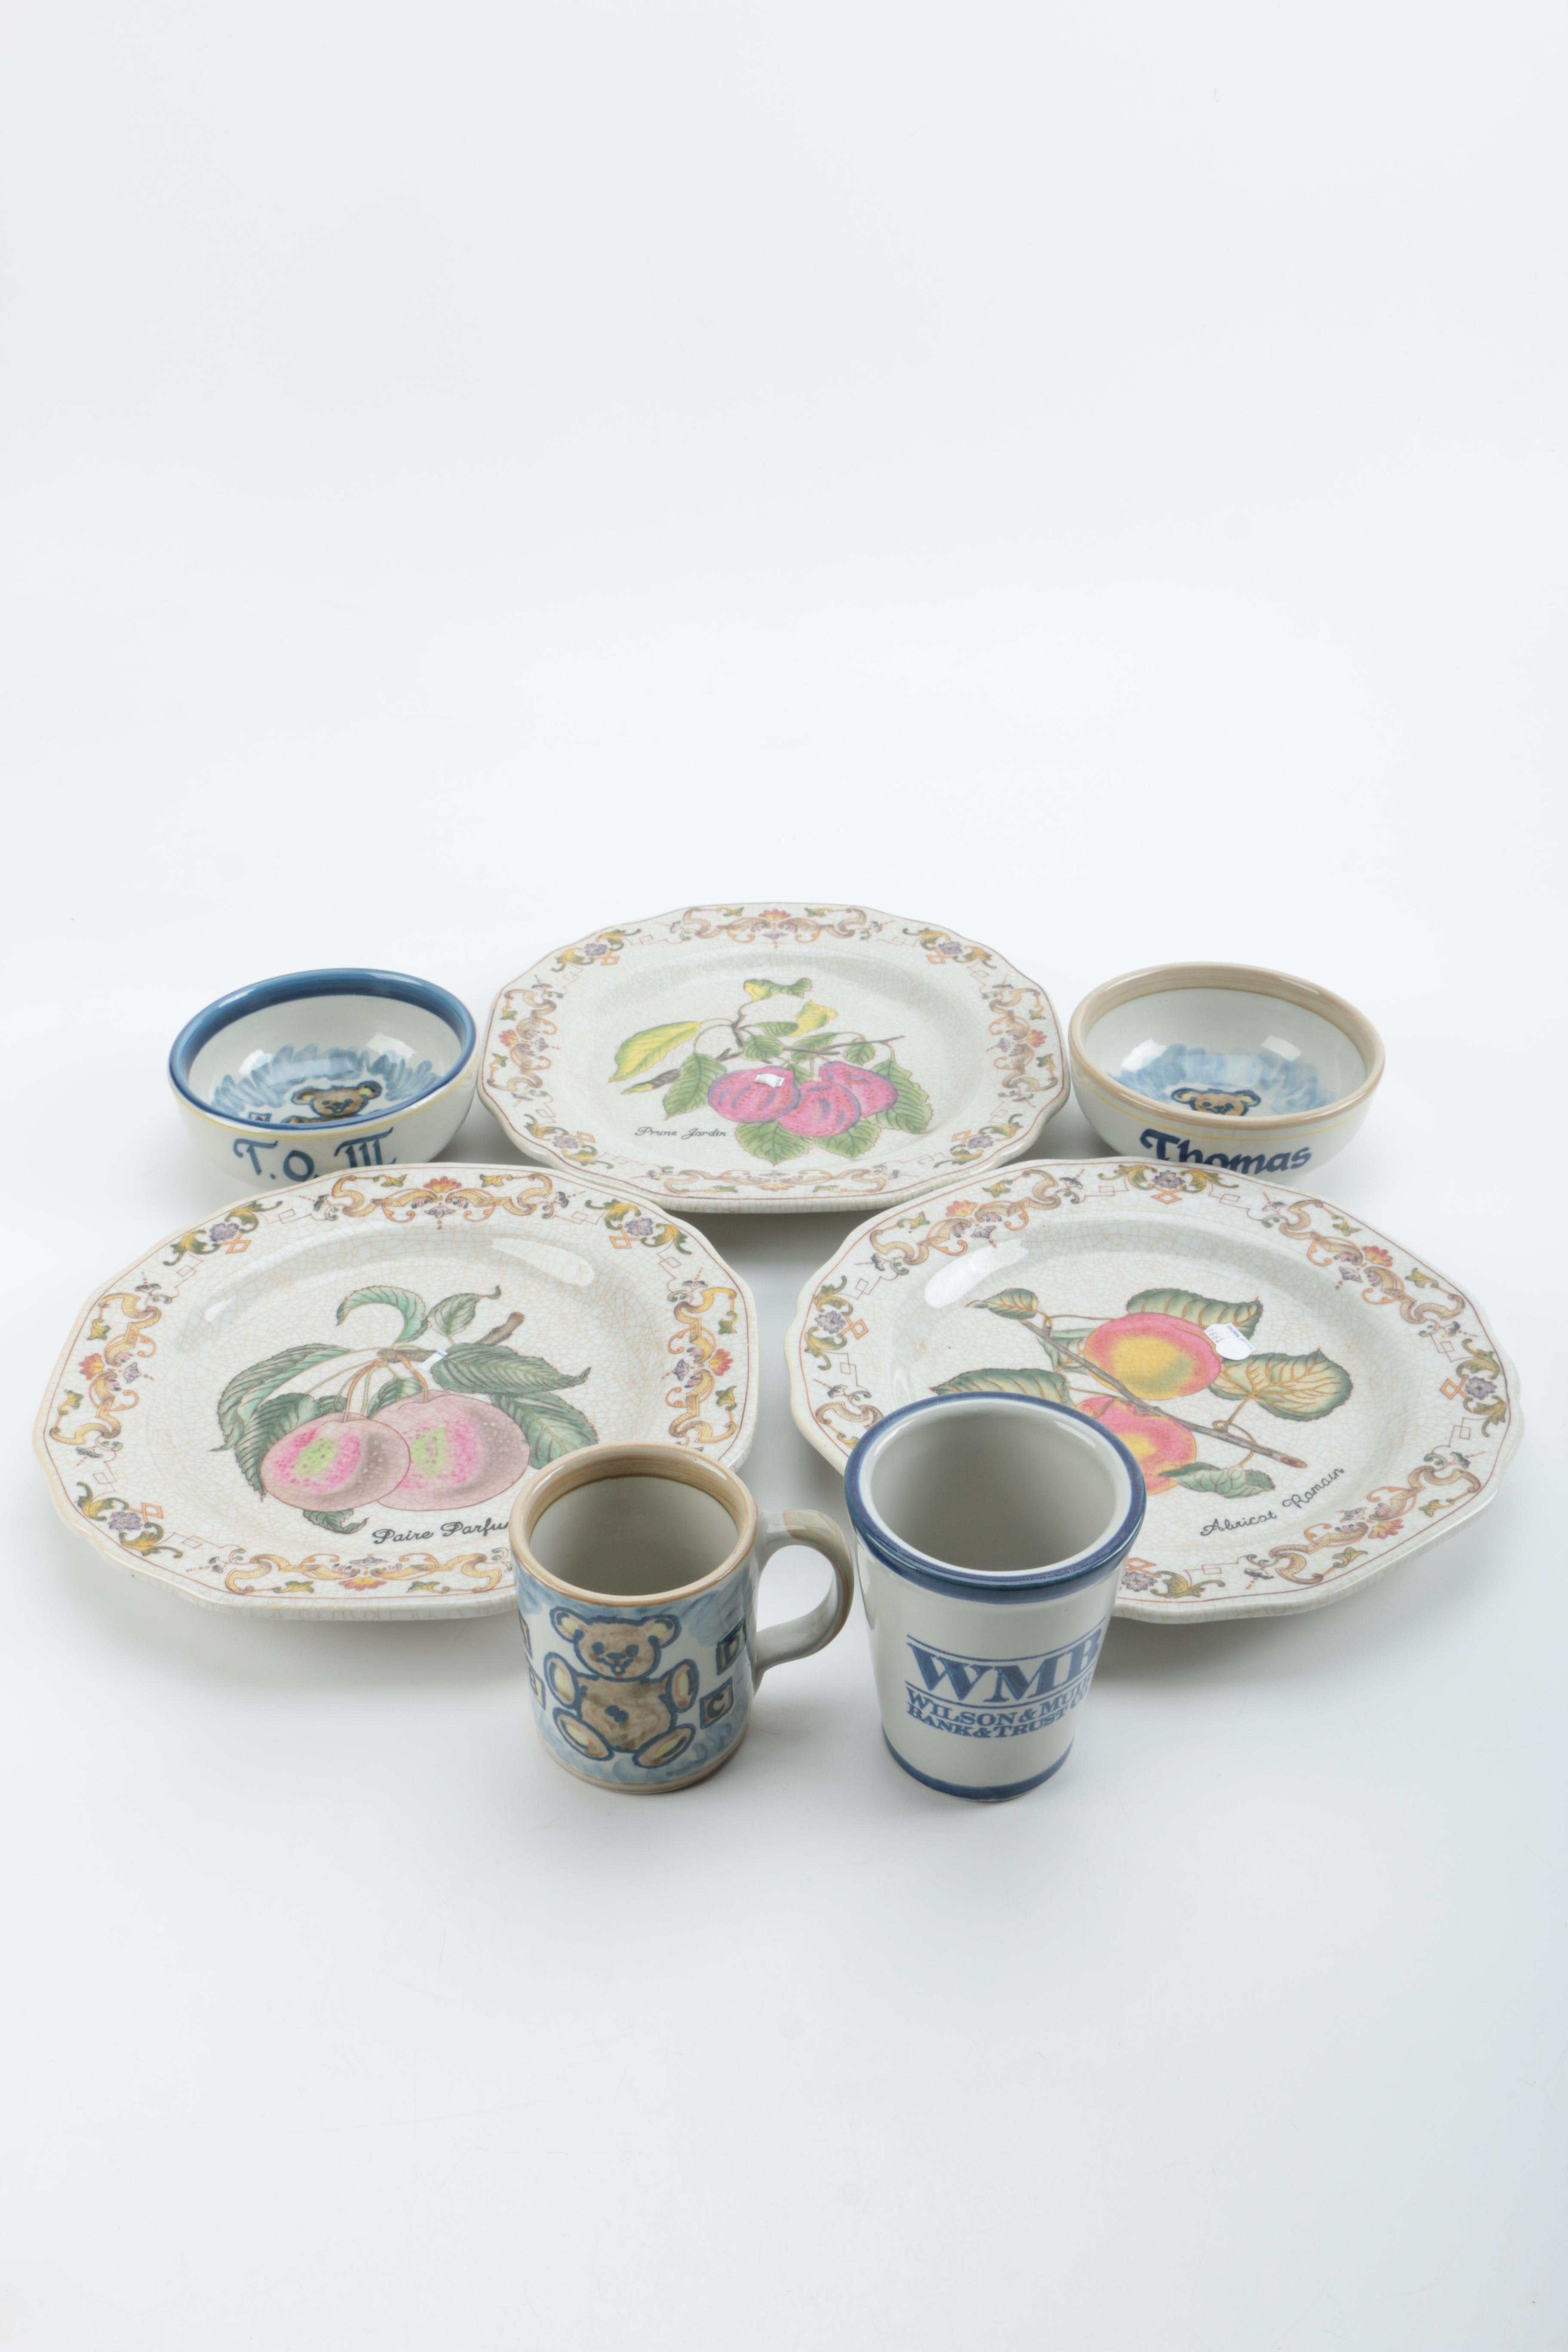 Wong Lee and Louisville Stoneware Plates, Bowls and Mugs